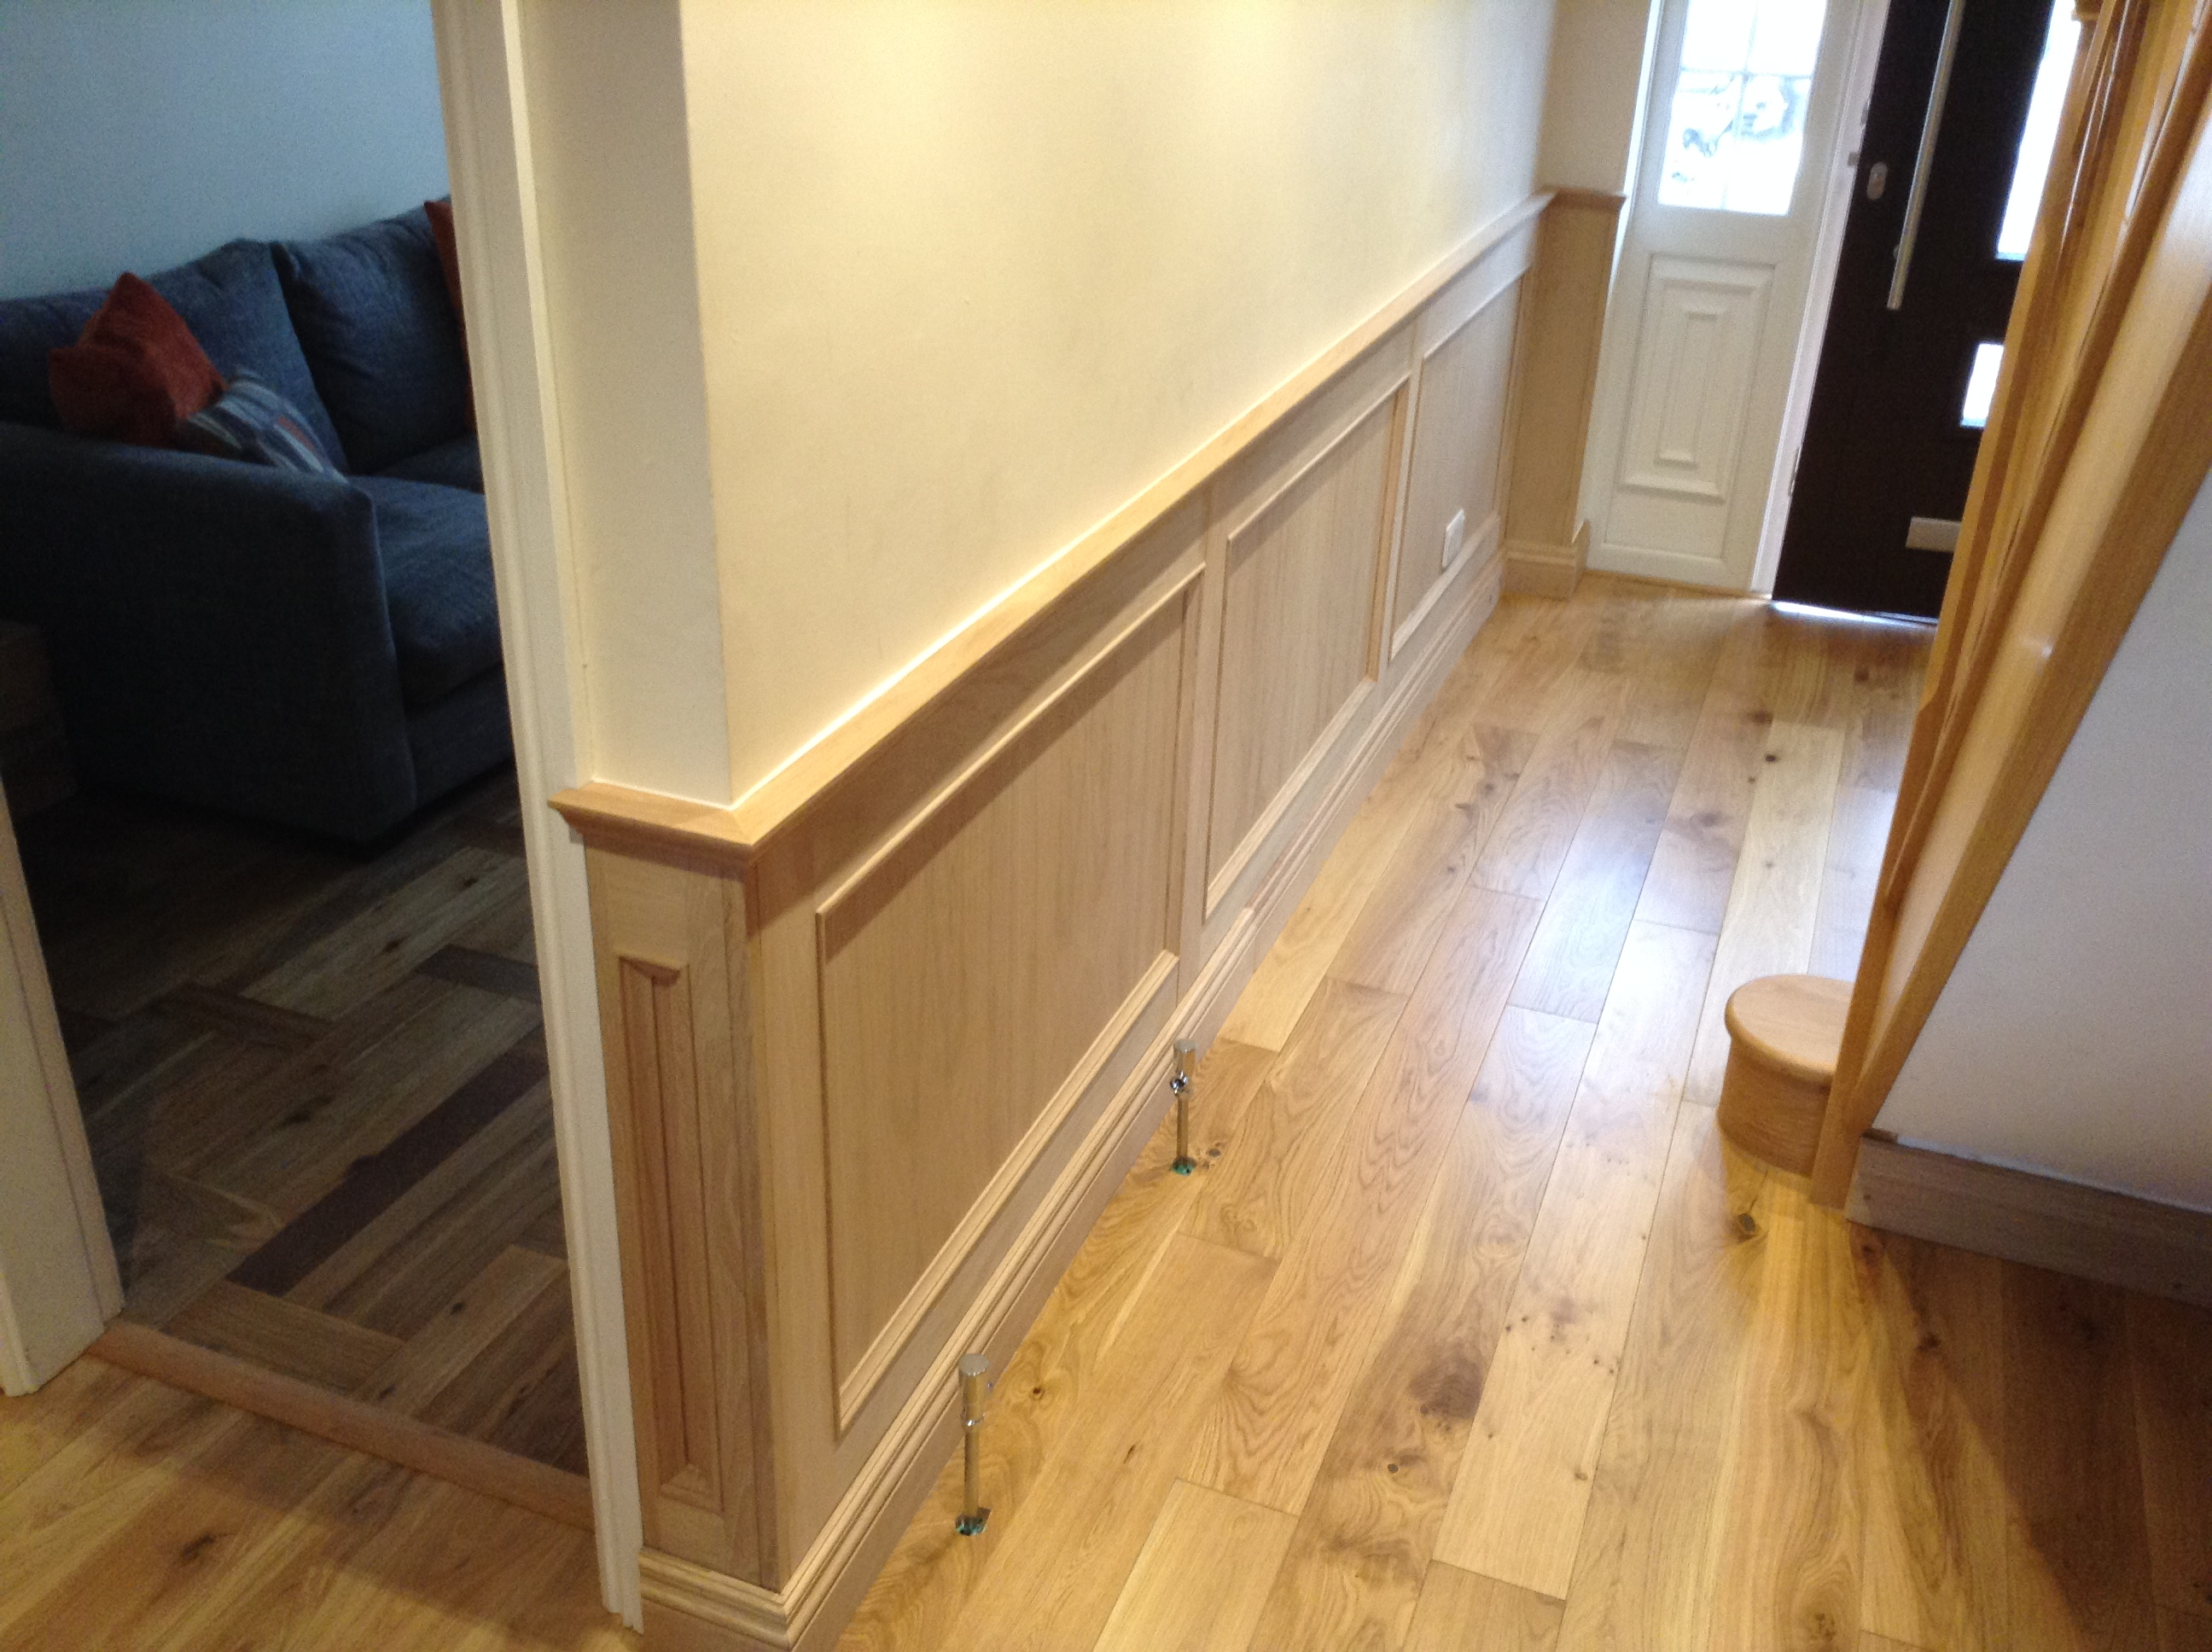 oak panelling by wall panelling experts